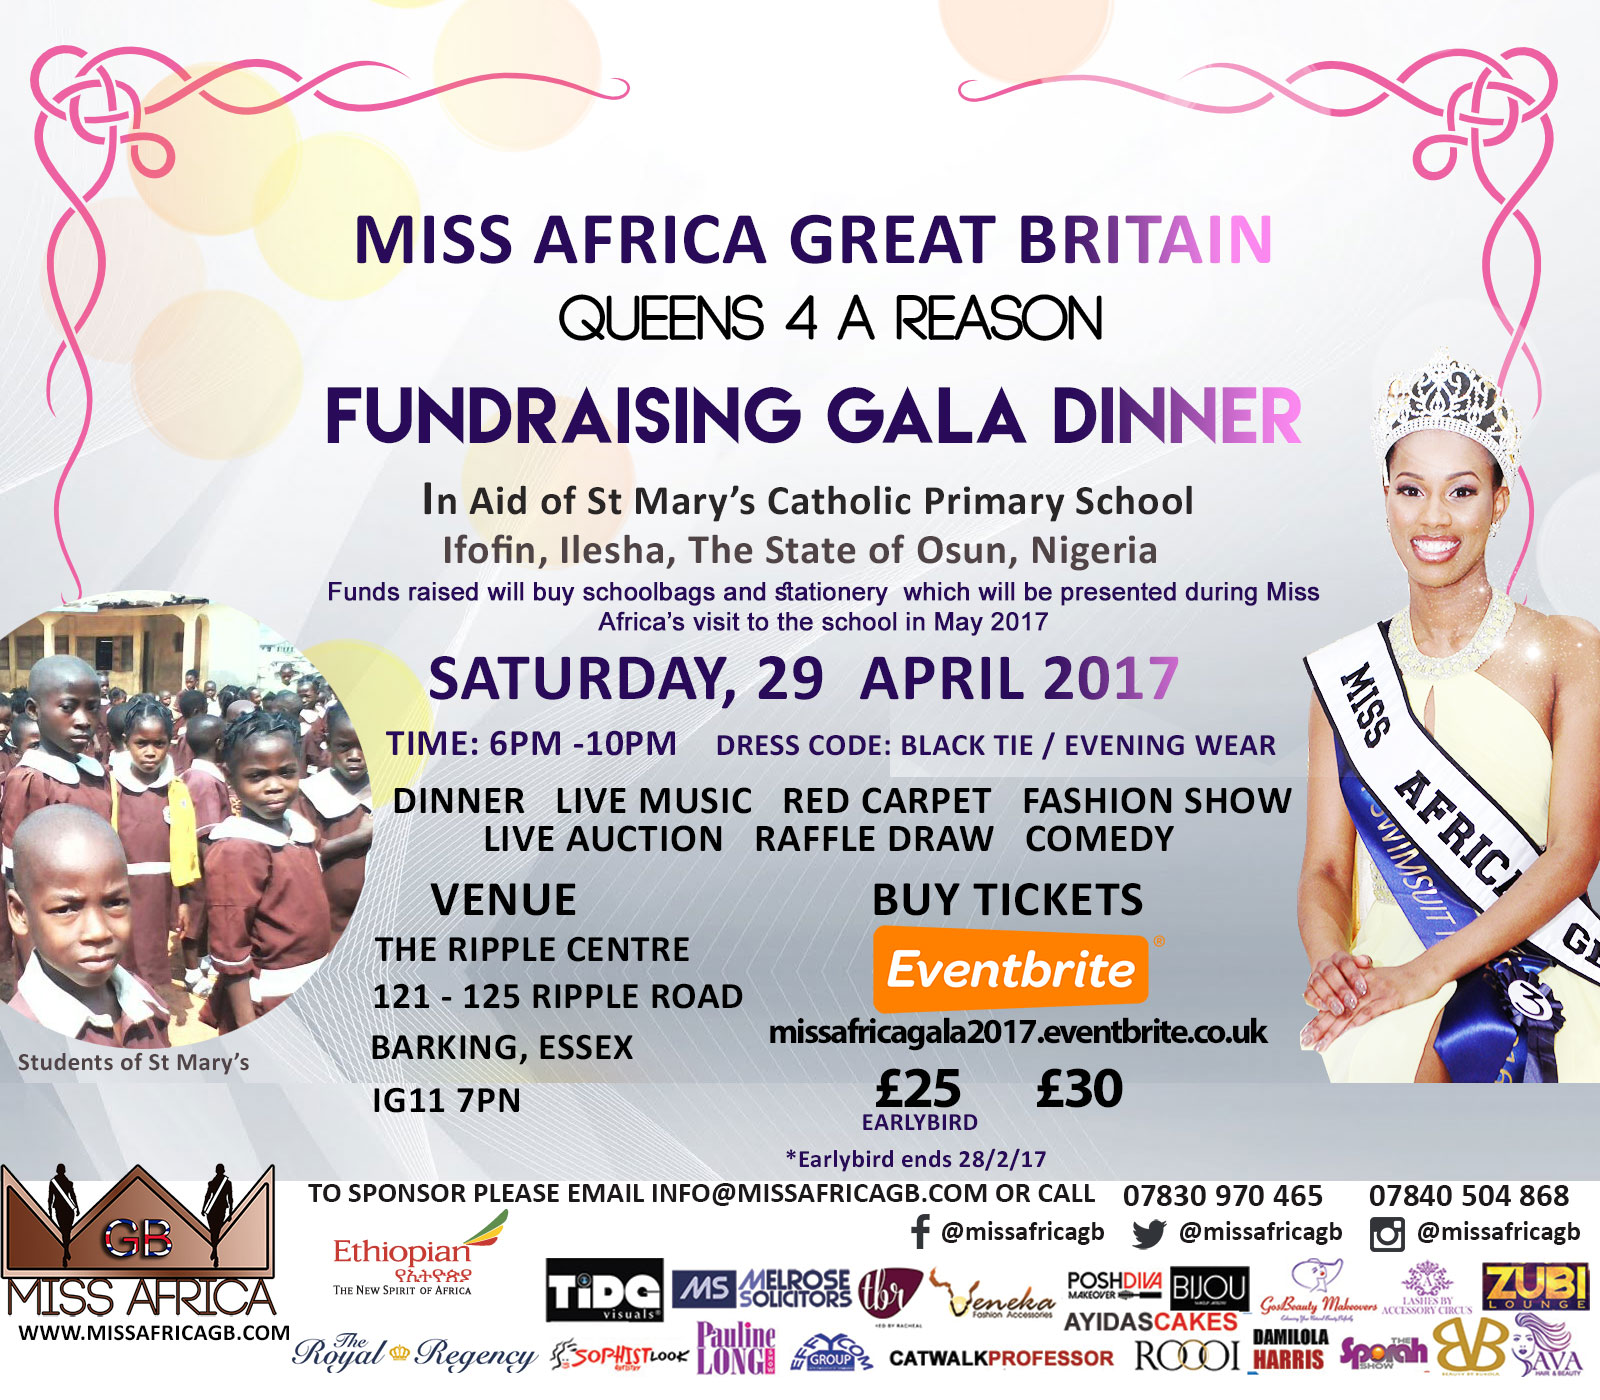 MISS AFRICA GREAT BRITAIN 2017 FUNDRAISER